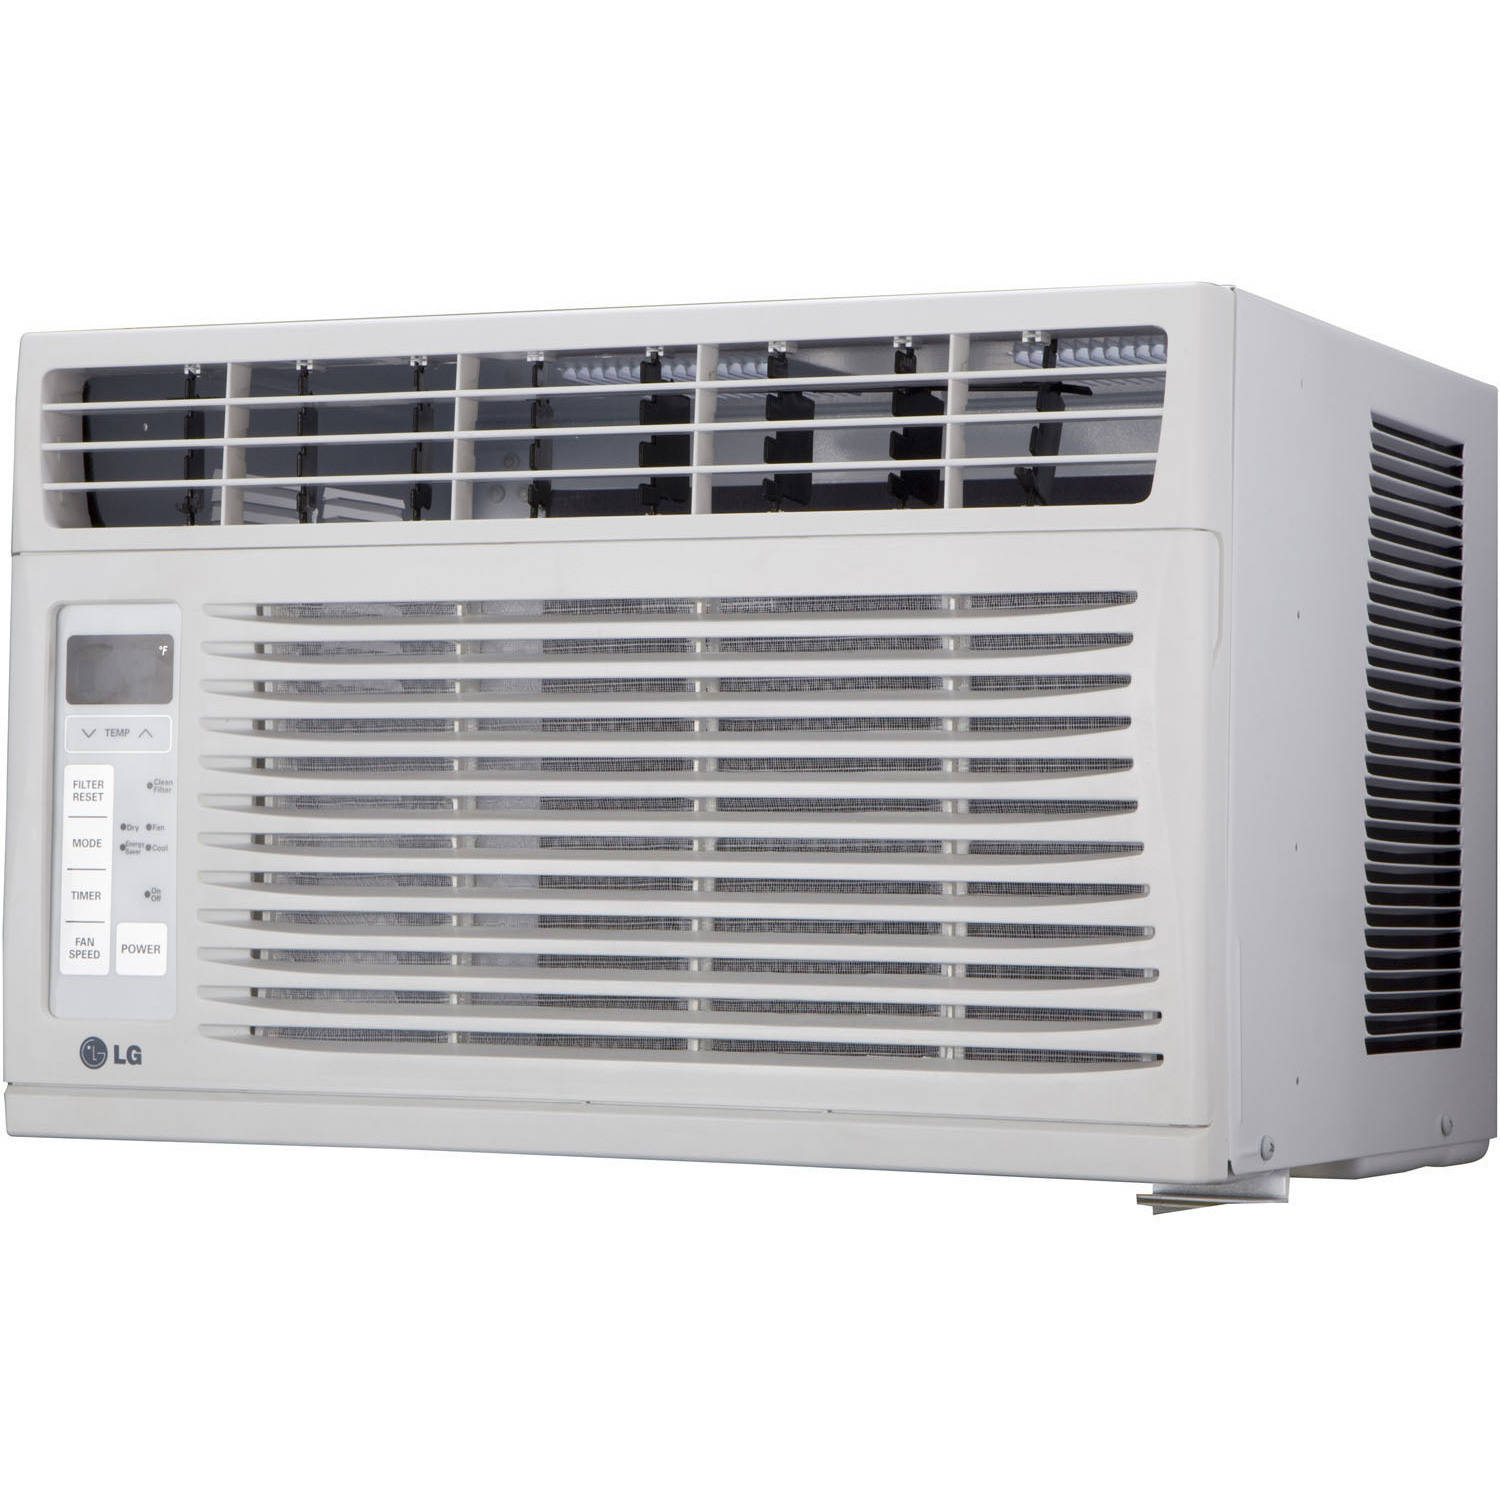 LG LW6016R 6,000 BTU 115V Window-Mounted Air Conditioner with Remote Control